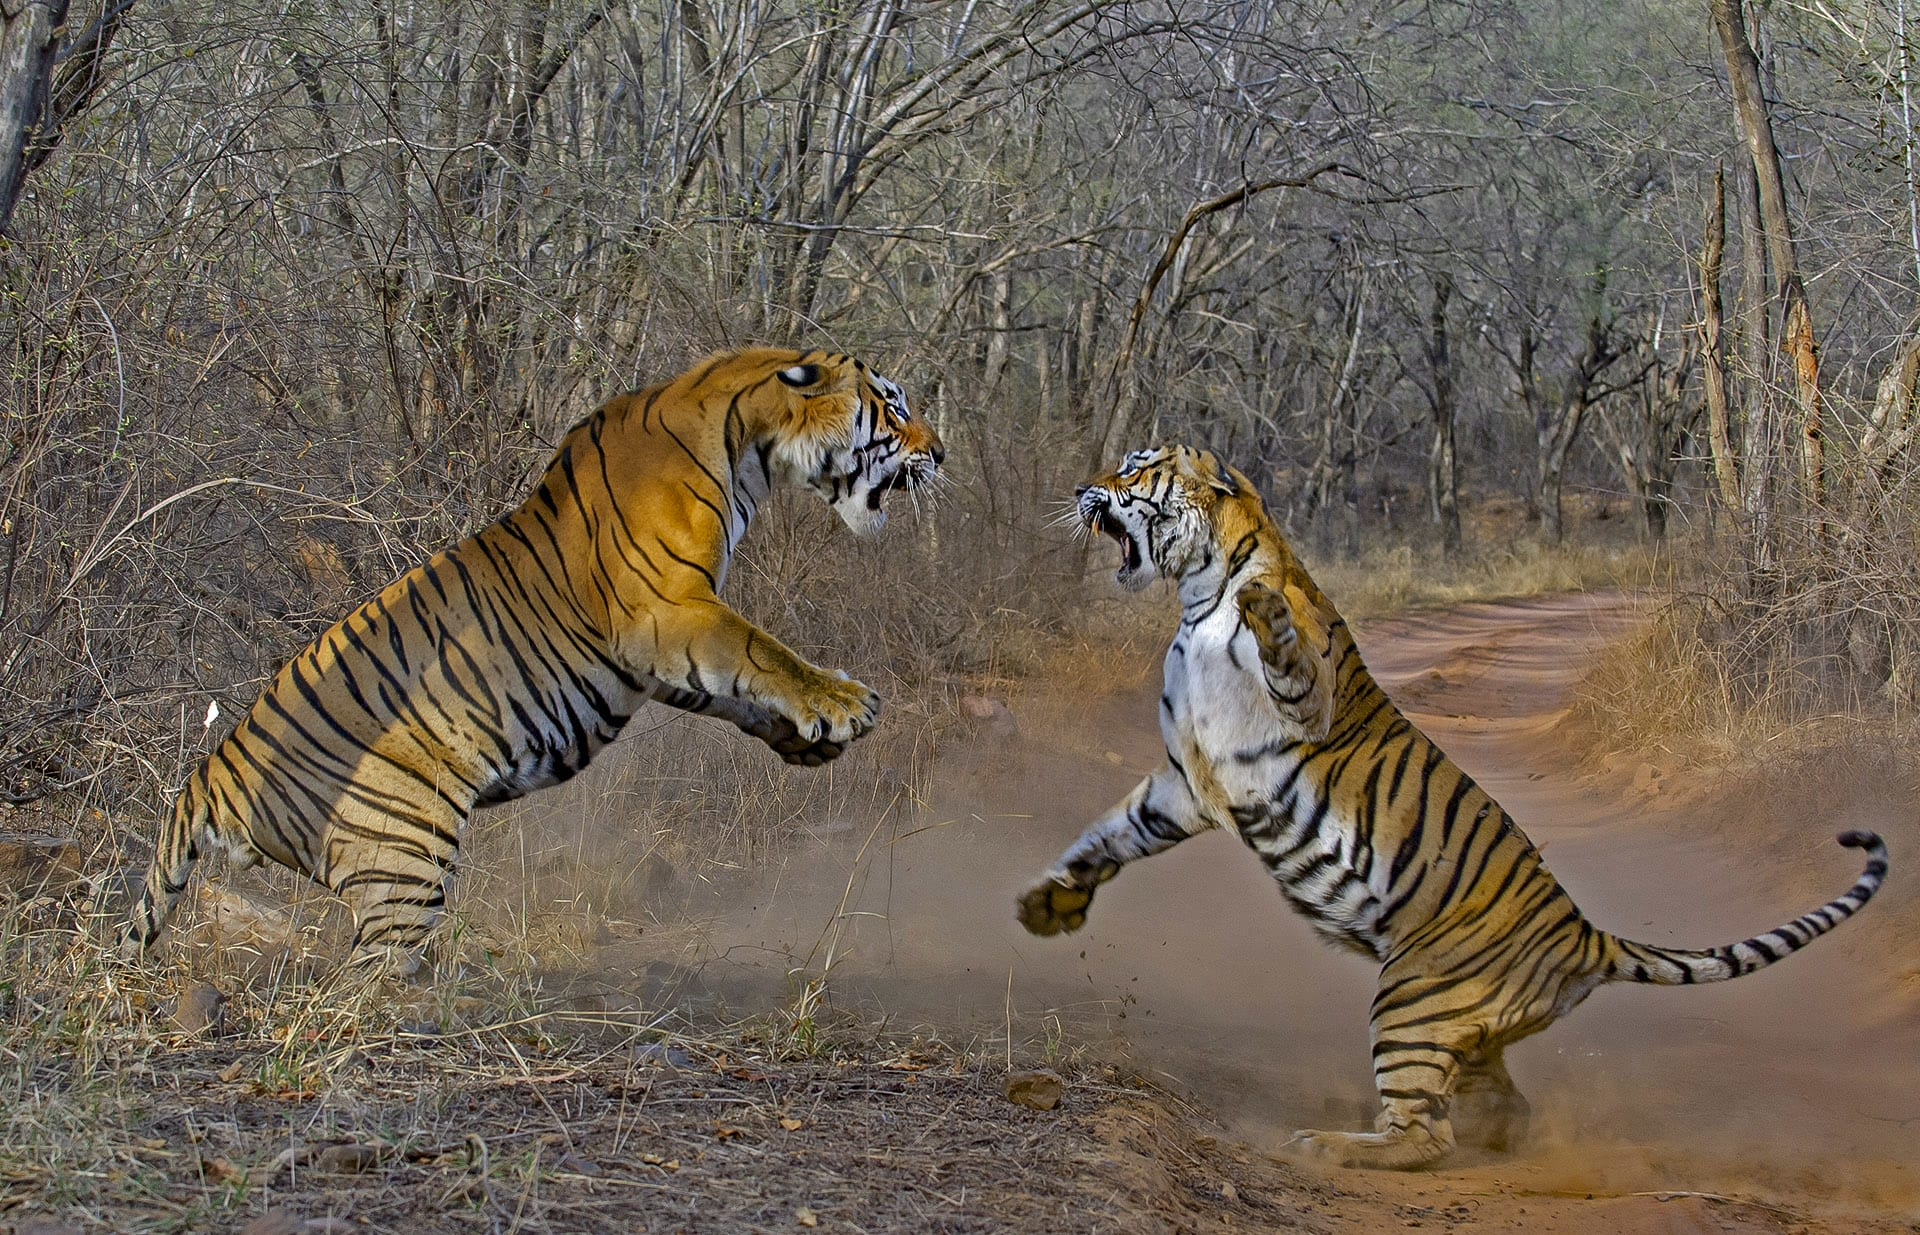 "There are two ways that sub-adults create their territory: By challenging existing tigers in the area or finding a vacant area in the forest that is unclaimed. ""More commonly, tigers undergo a lot of challenges and even a few battles before they are able to establish their own territories. Many may get killed in the process."""